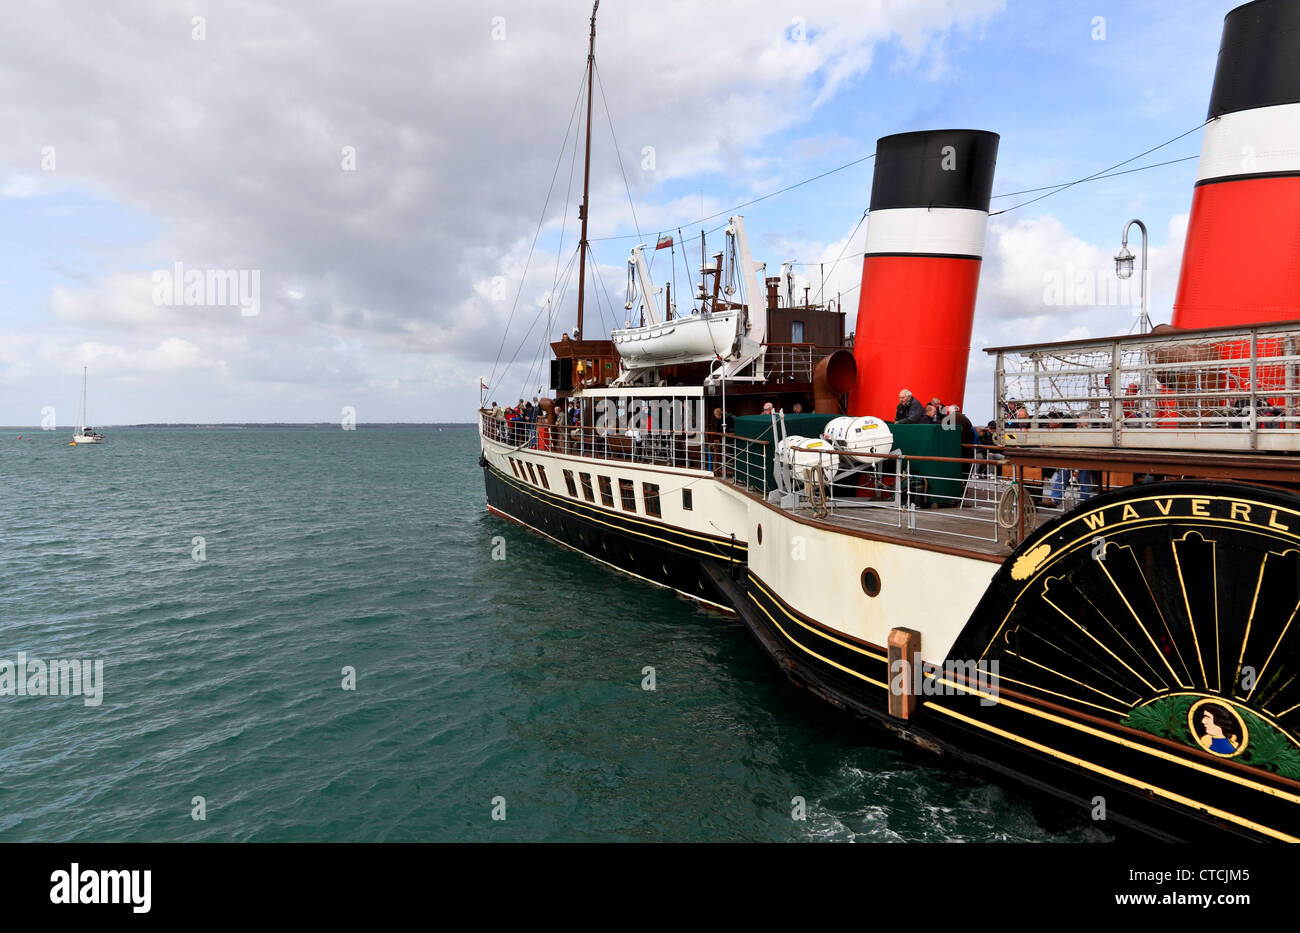 4165. The Waverley Paddle-Steamer at Yarmouth Pier, Isle of Wight, UK - Stock Image